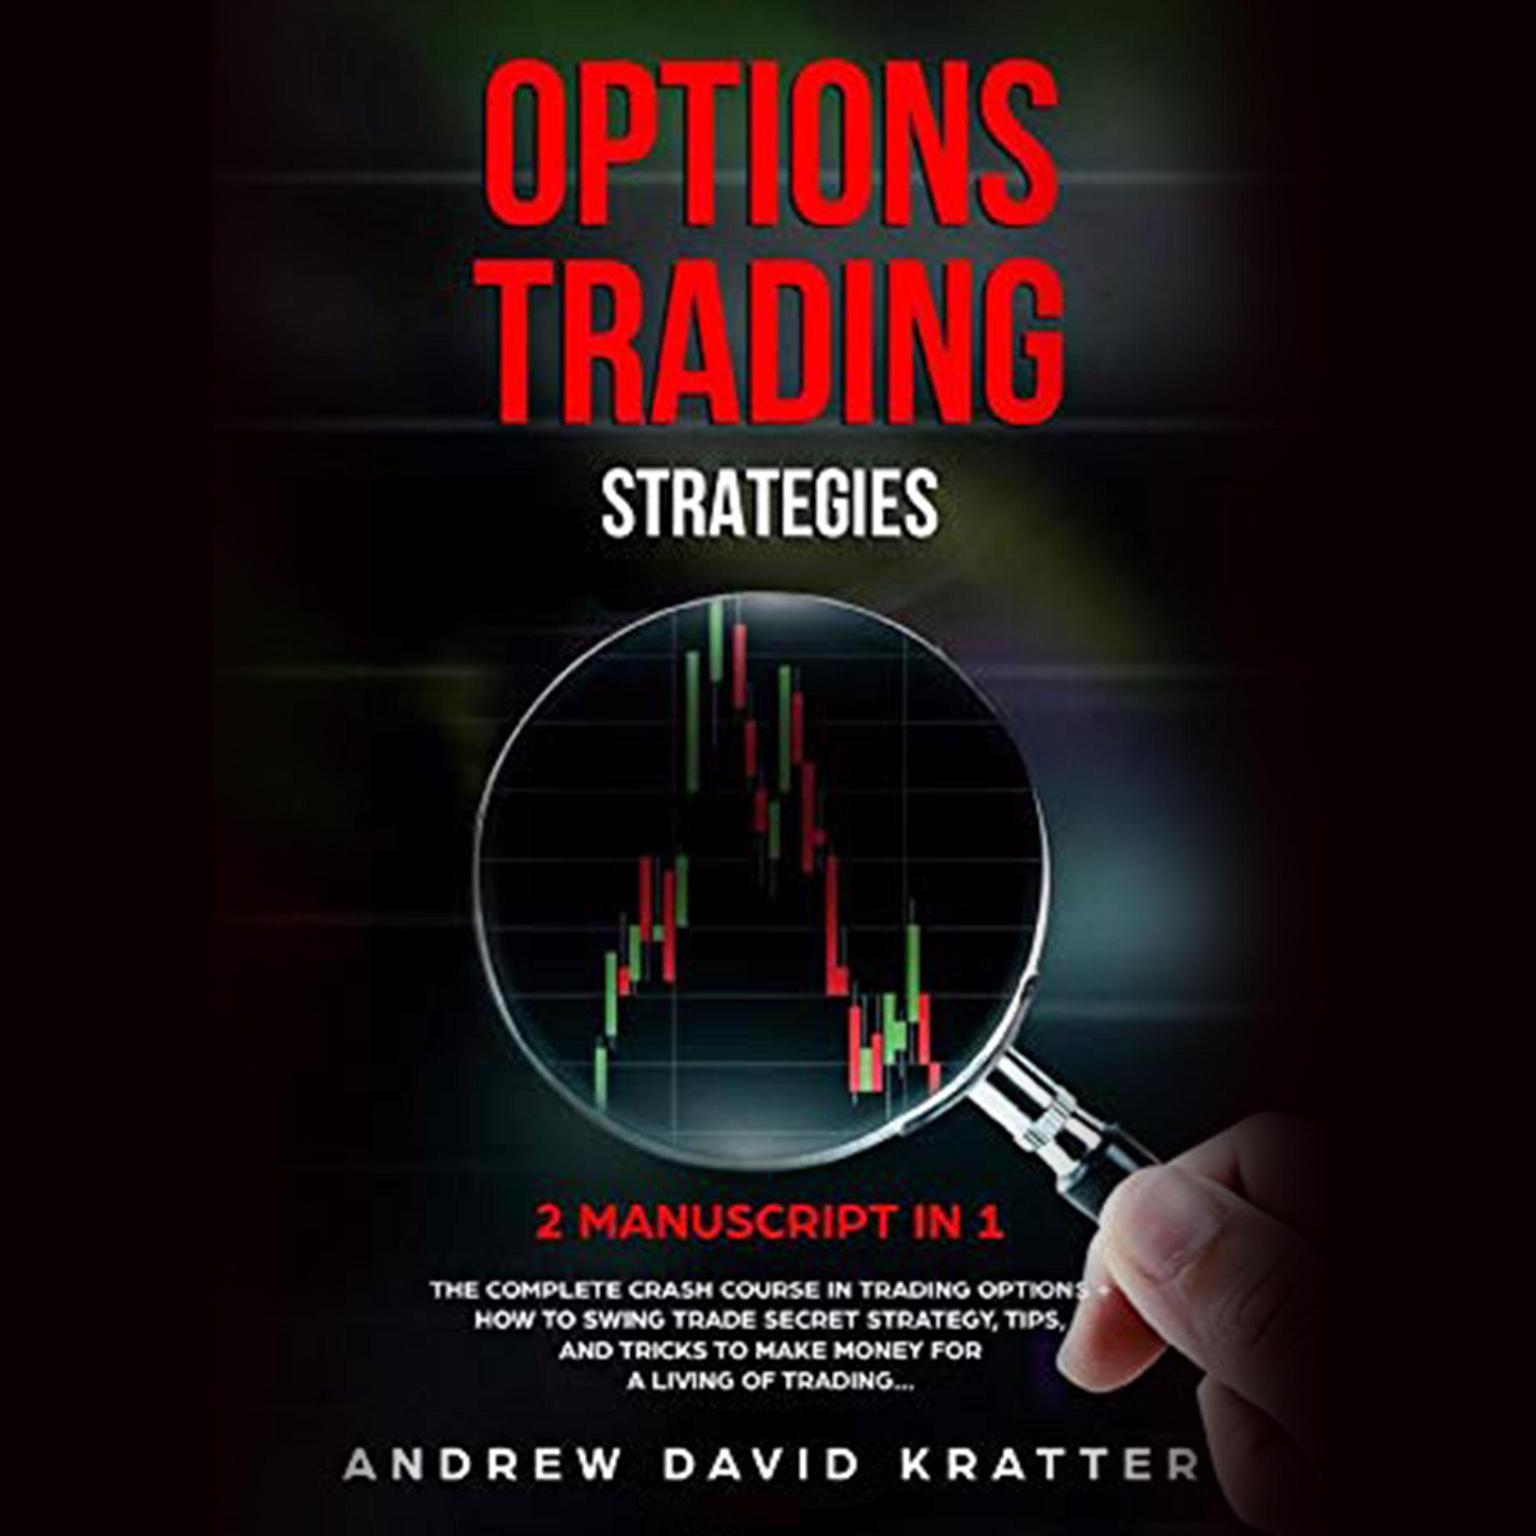 Printable Options Trading Strategies:: 2 Manuscript in 1: The Complete Crash Course in Trading Options + How To Swing Trade Secret Startegy, Tips and Tricks to Make Money for a Living of Trading (Abridged): 2 Manuscript in 1: The Complete Crash Course in Trading Options + How To Swing Trade Secret Startegy, Tips and Tricks to Make Money for a Living of Trading Audiobook Cover Art